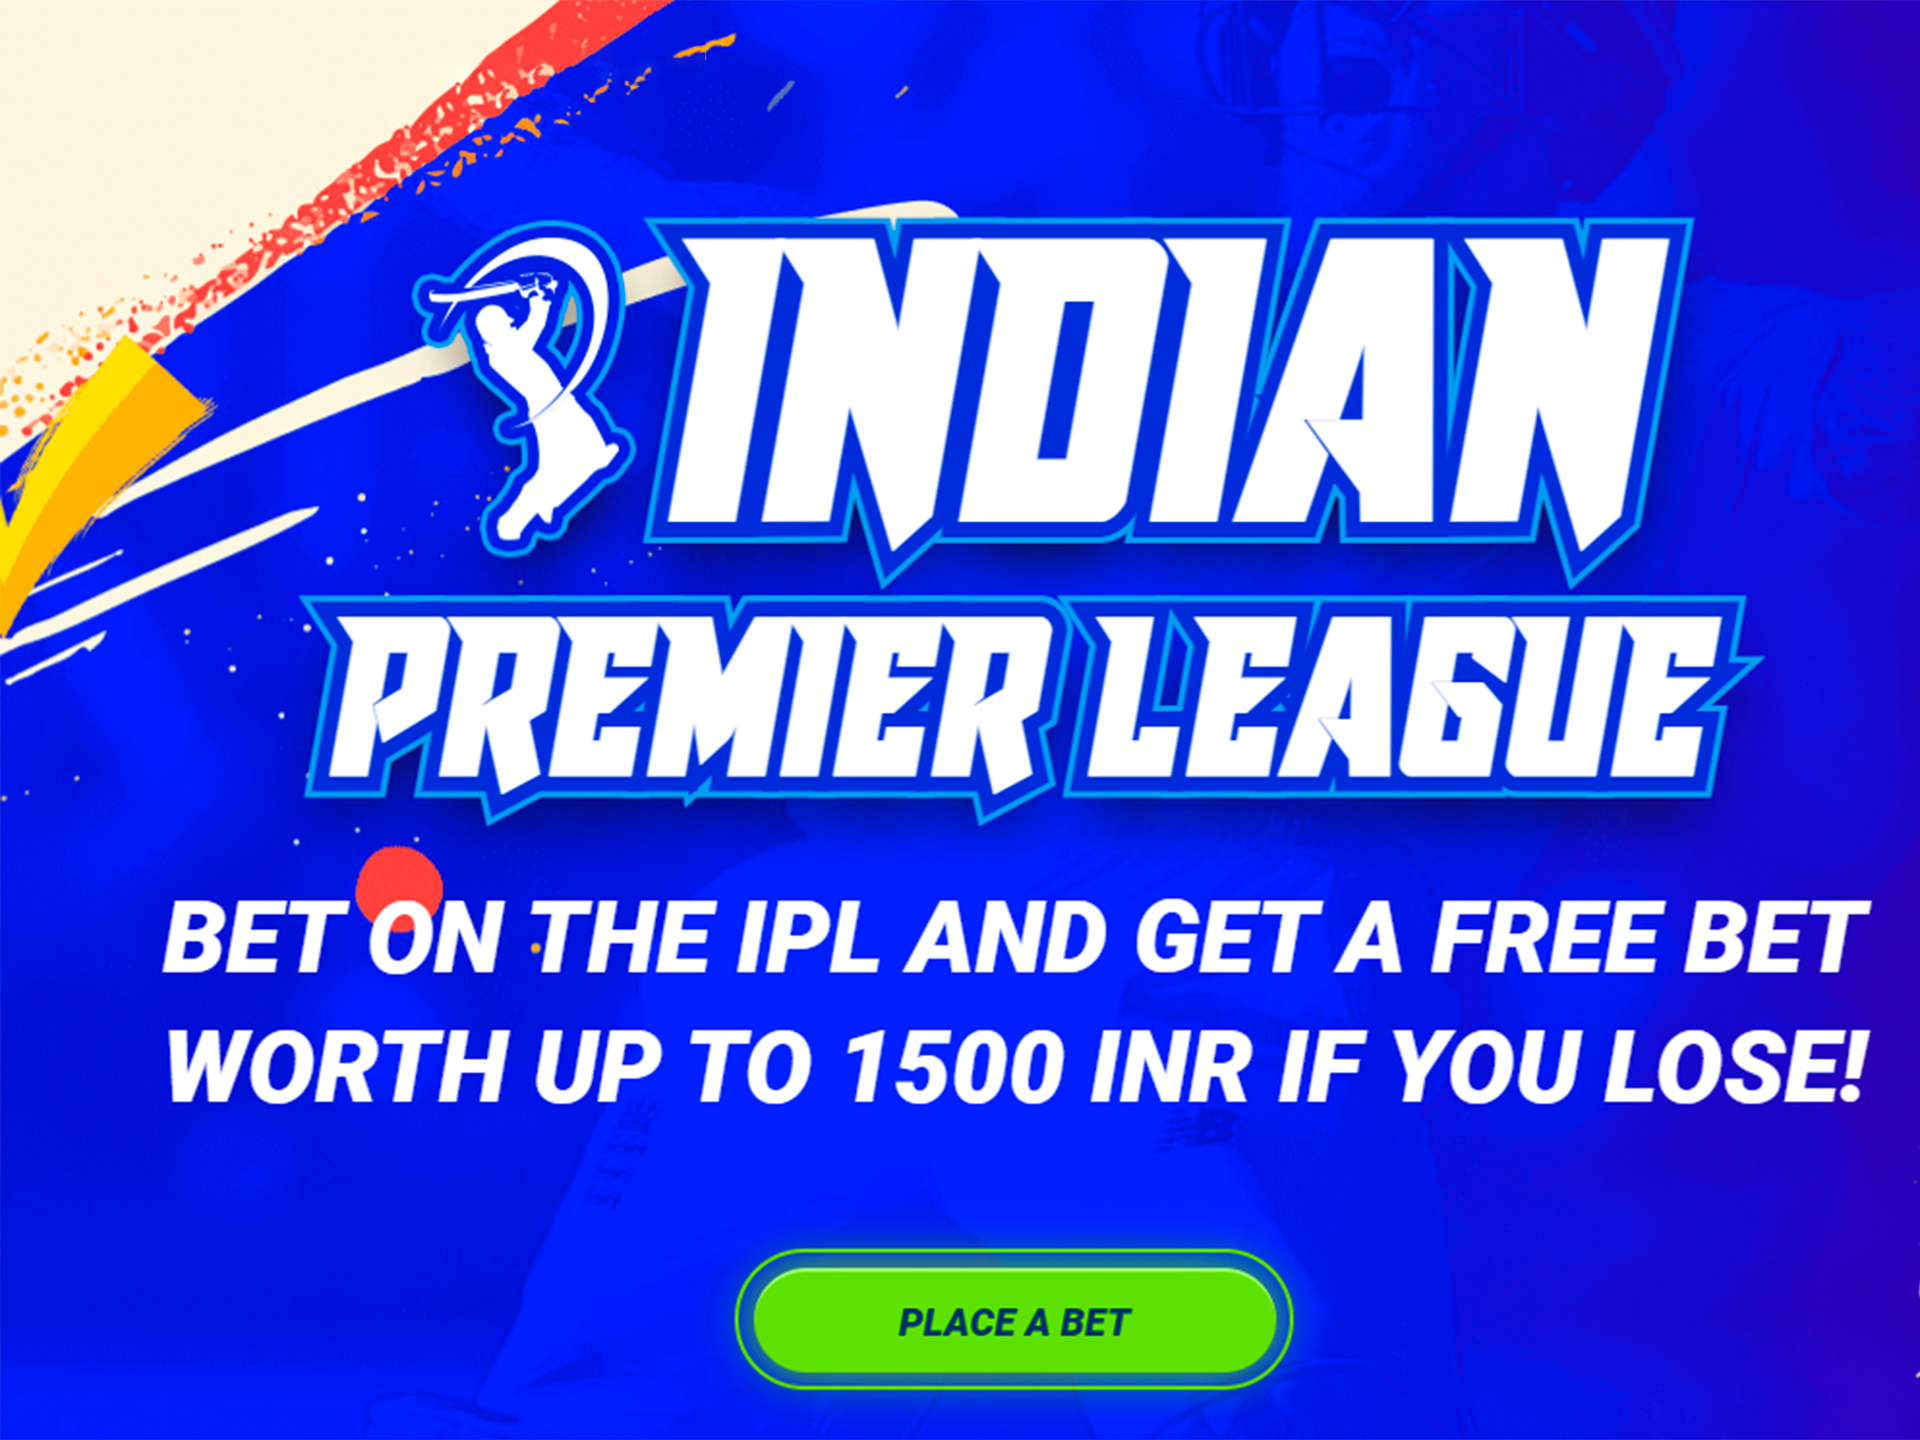 Additional bonuses offered by 1xbet in India.